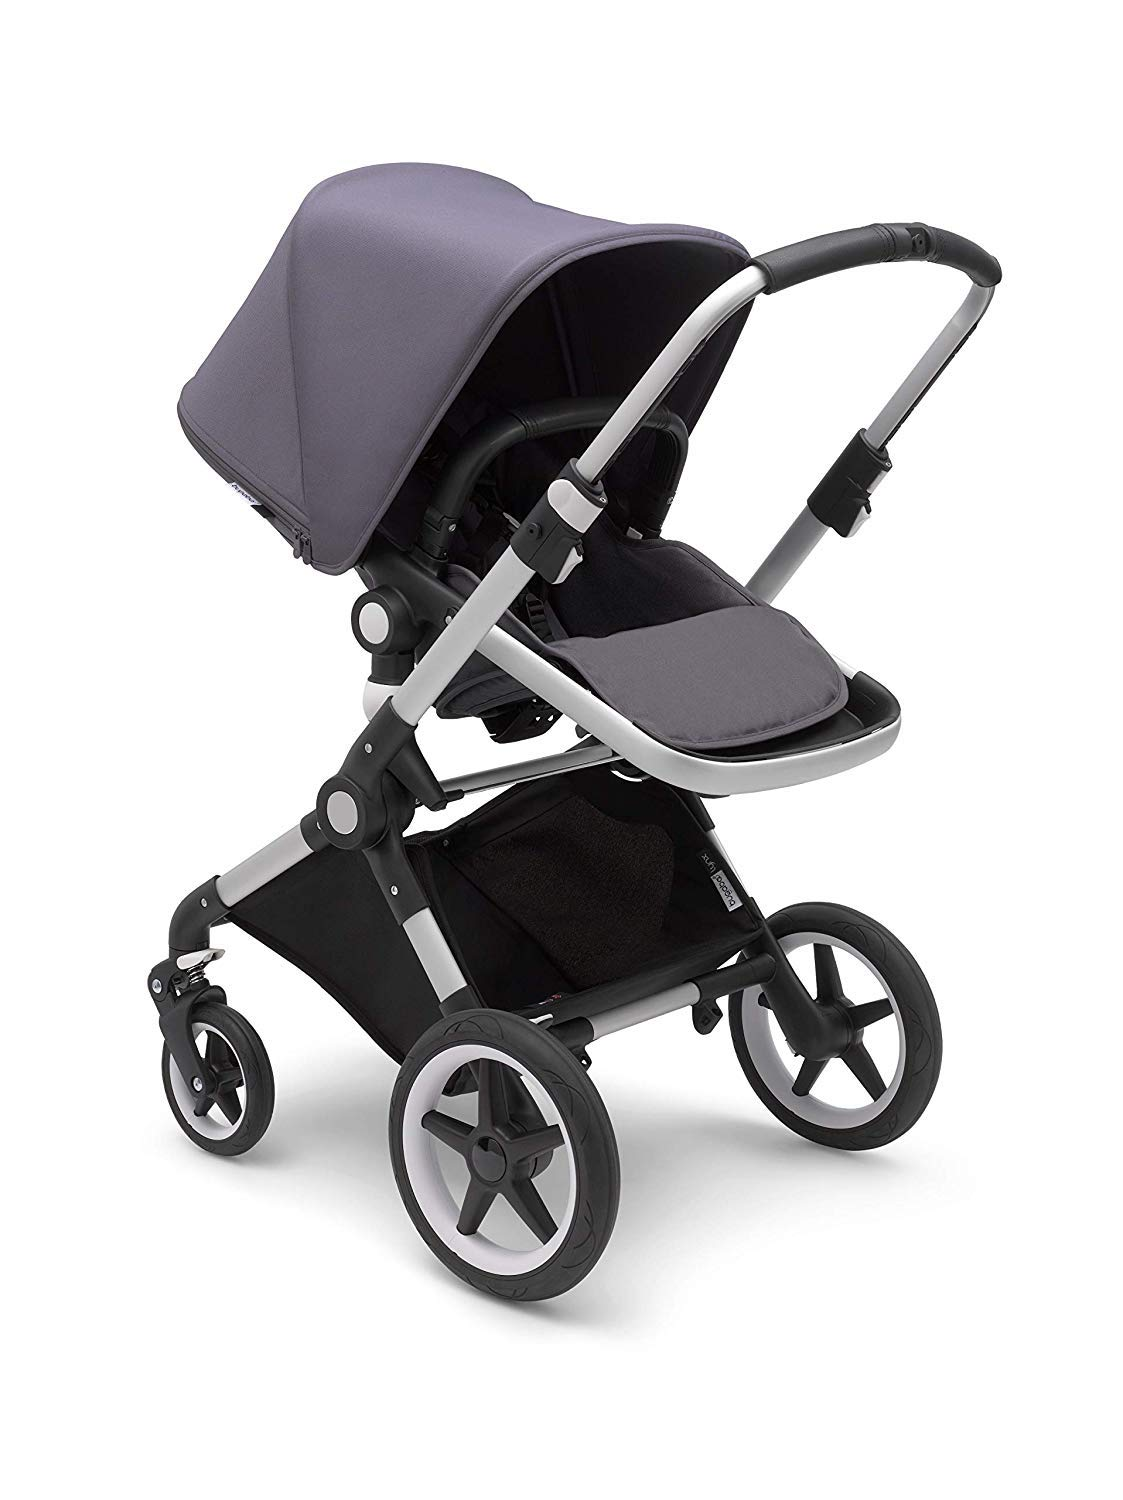 Bugaboo Lynx - The Lightest Full-Size Baby Stroller - All-Terrain Stroller with an Effortless Push and One-Handed Steering - Compatible with Bugaboo Turtle by Nuna Car Seat – Alu/Steel Blue